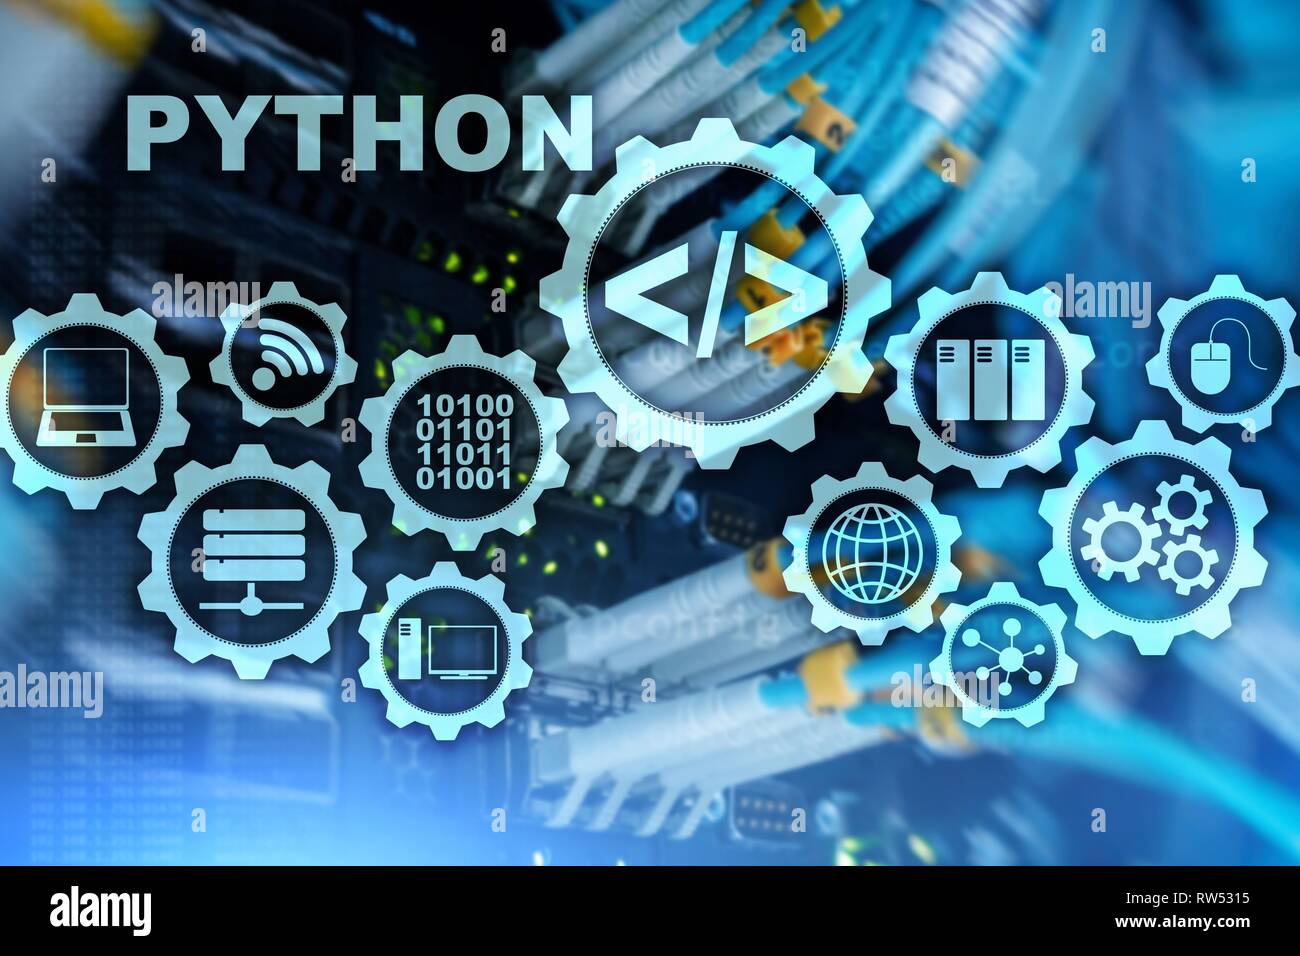 Python Programming Language on server room background